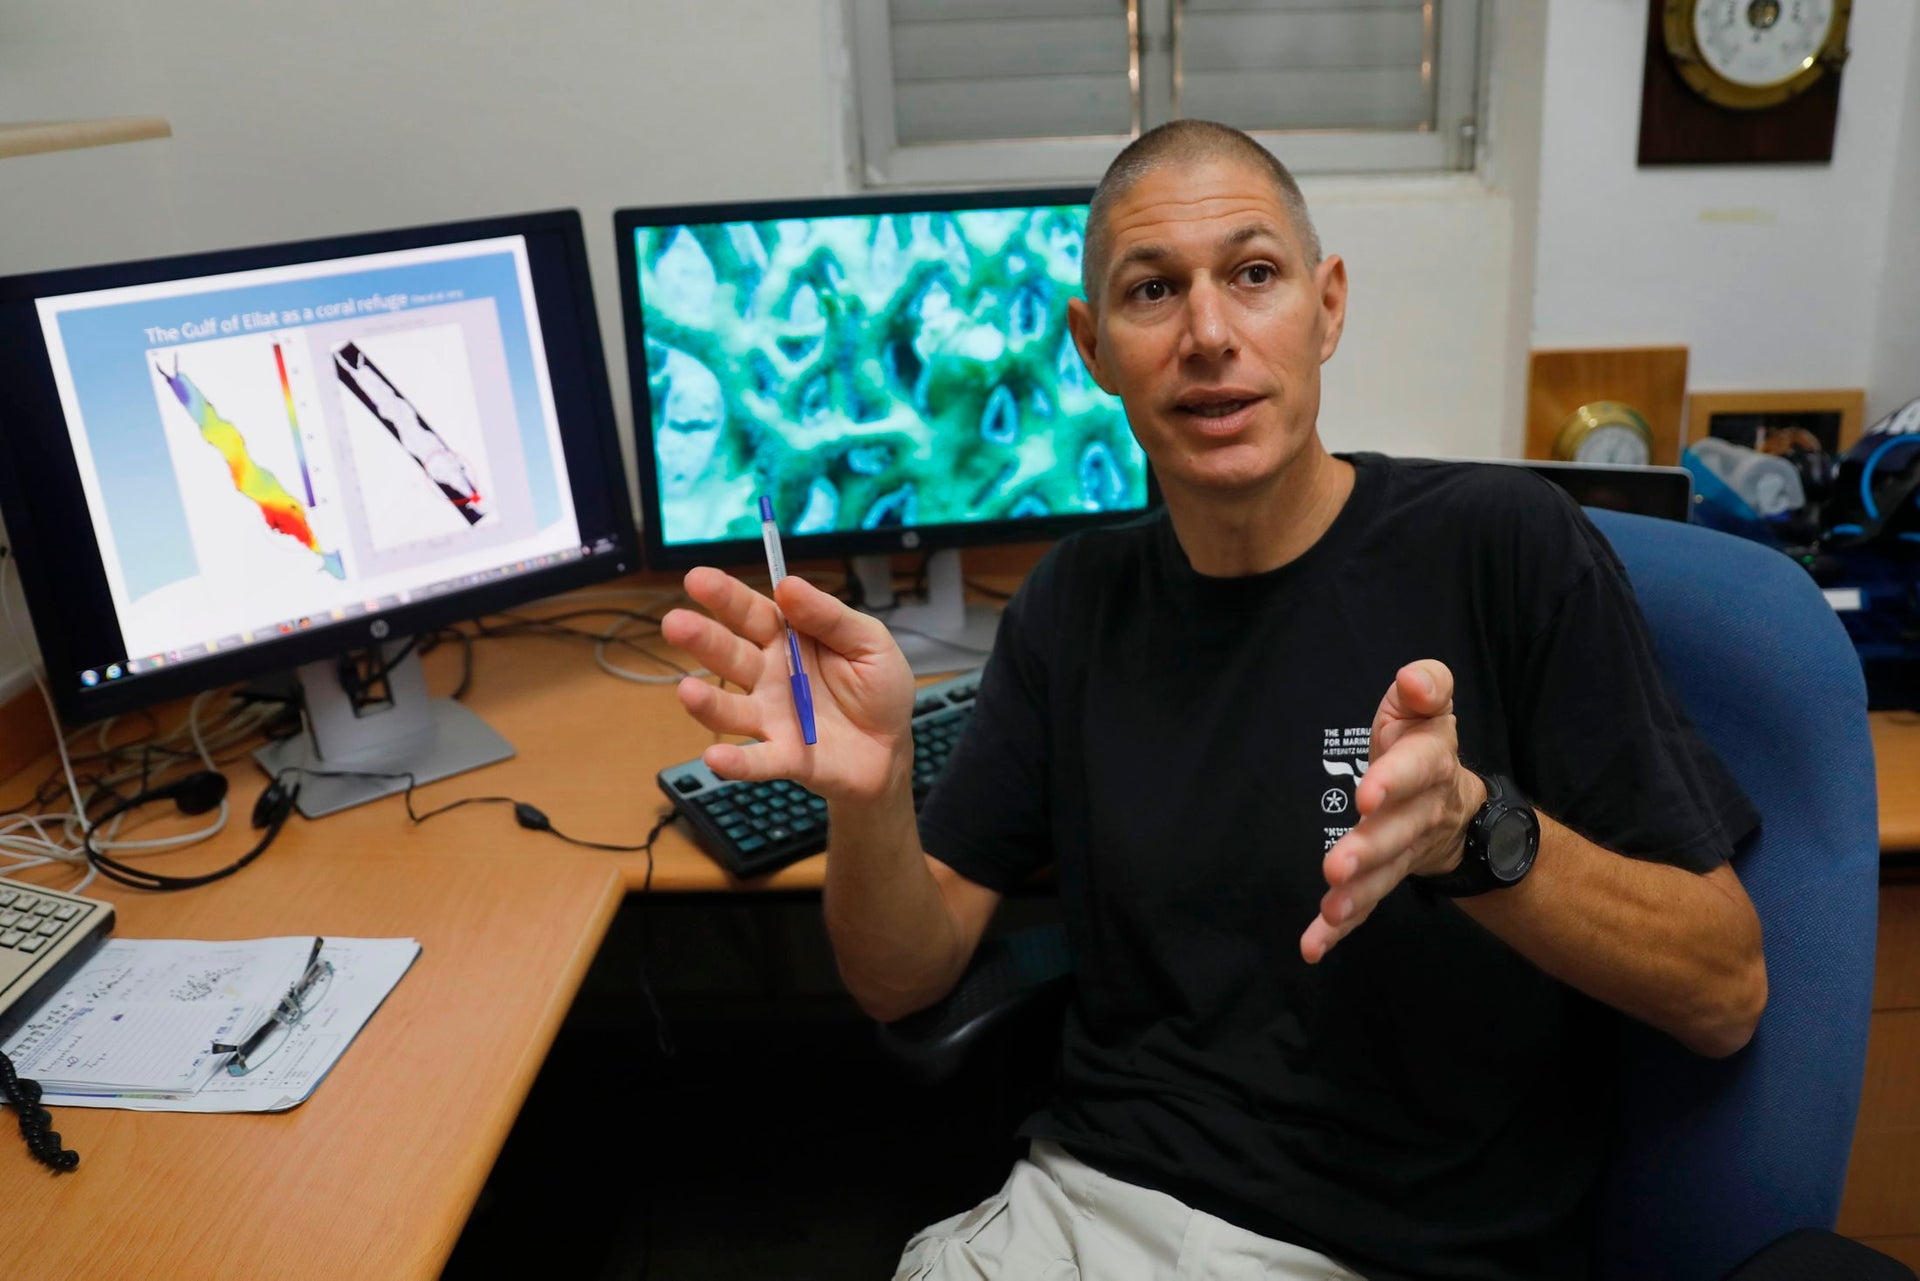 Maoz Fine, a professor of marine biology from Israel's Bar Ilan university who is conducting research on the Gulf of Eilat, gestures while sitting in an office at the Interuniversity Institute for Marine Sciences in the Red Sea resort of Eilat on June 12, 2017.